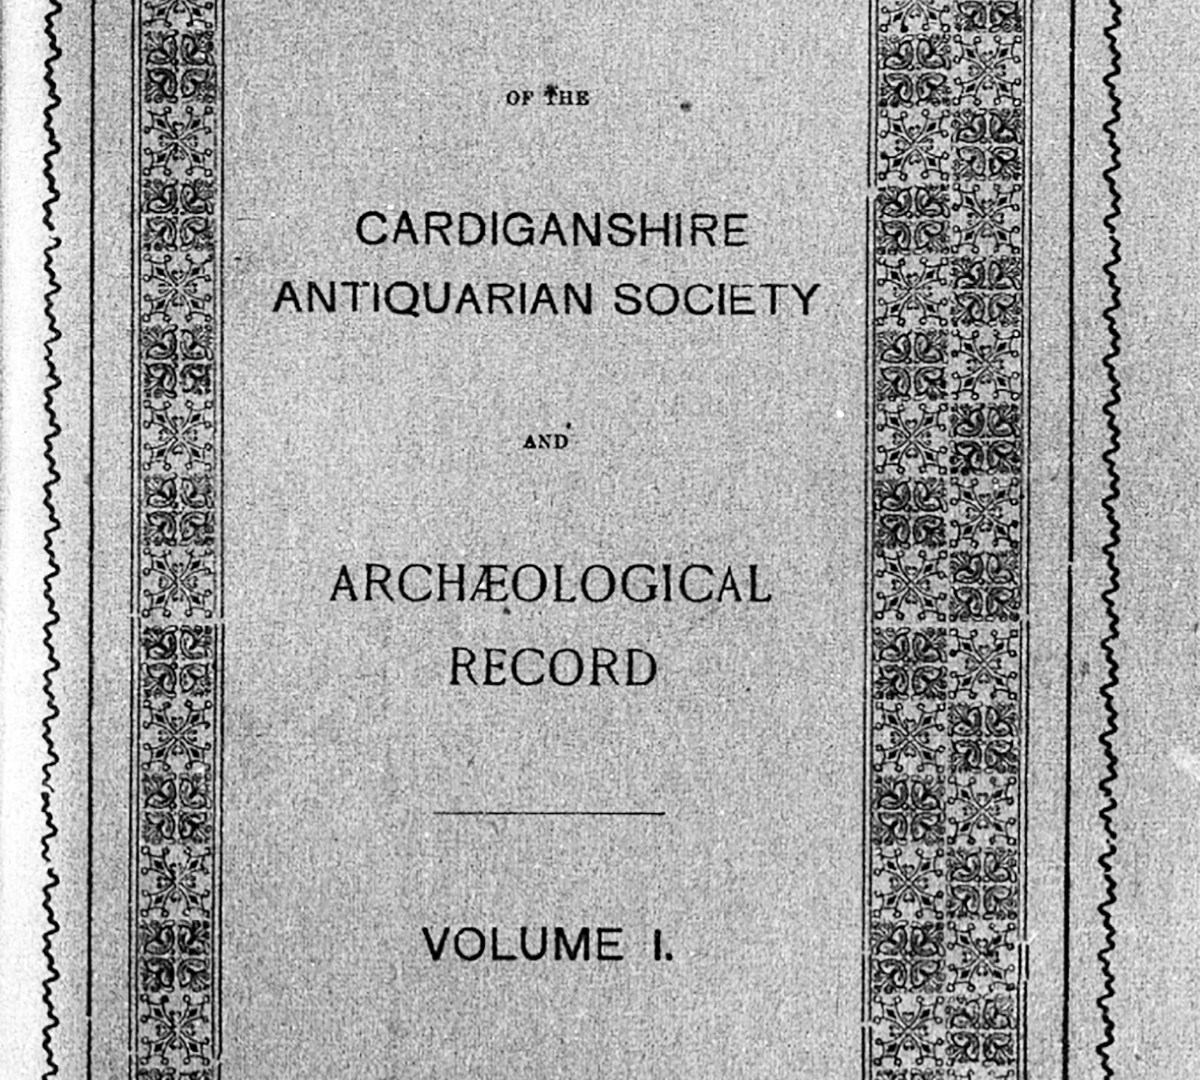 CEREDIGION HISTORICAL SOCIETY